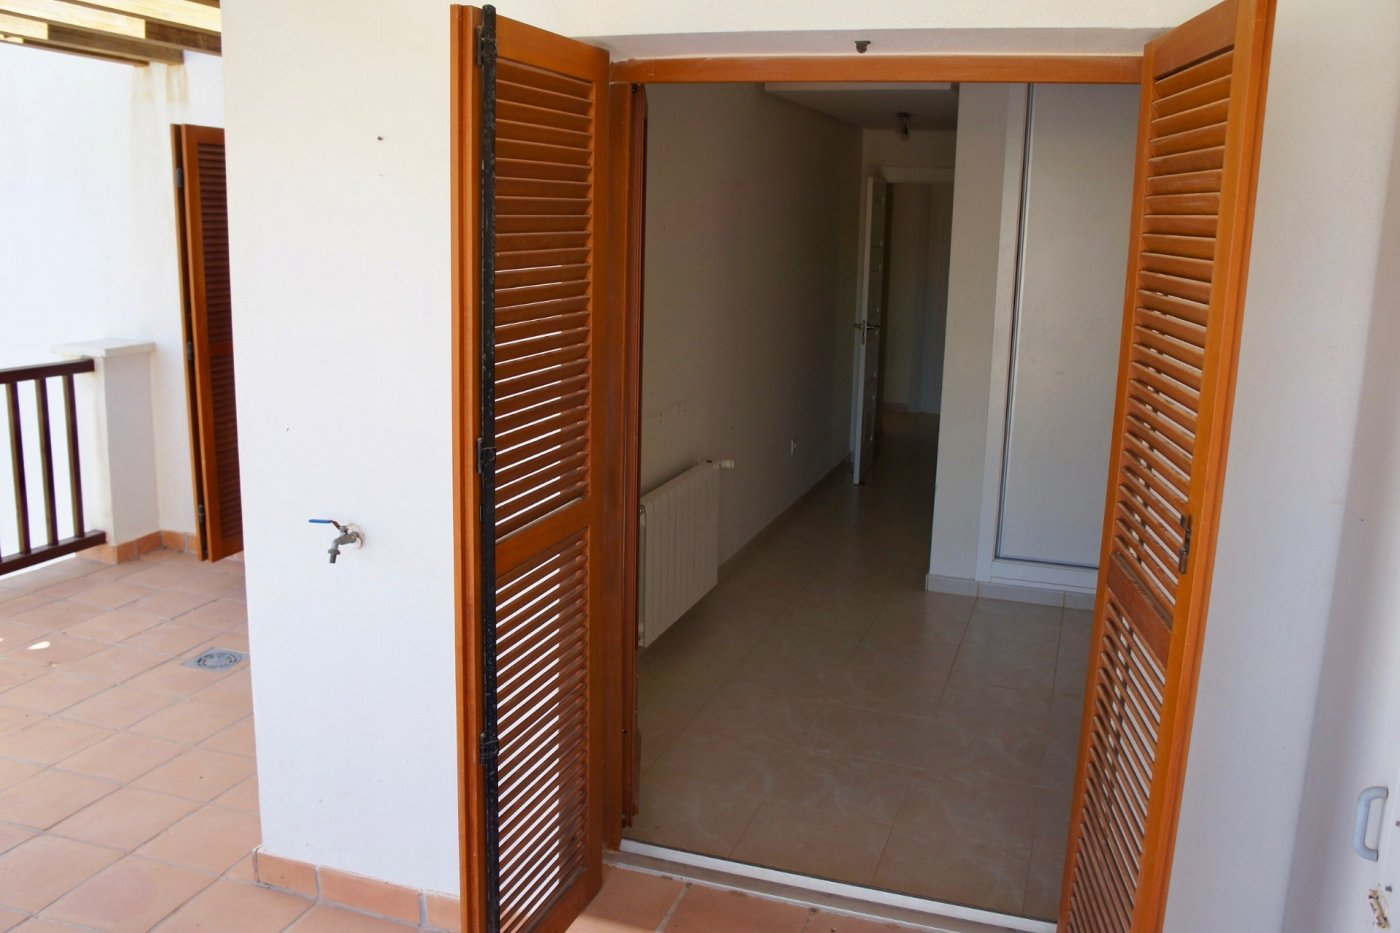 Image 5 Apartment ref 3265-02805 for sale in El Valle Golf Resort Spain - Quality Homes Costa Cálida